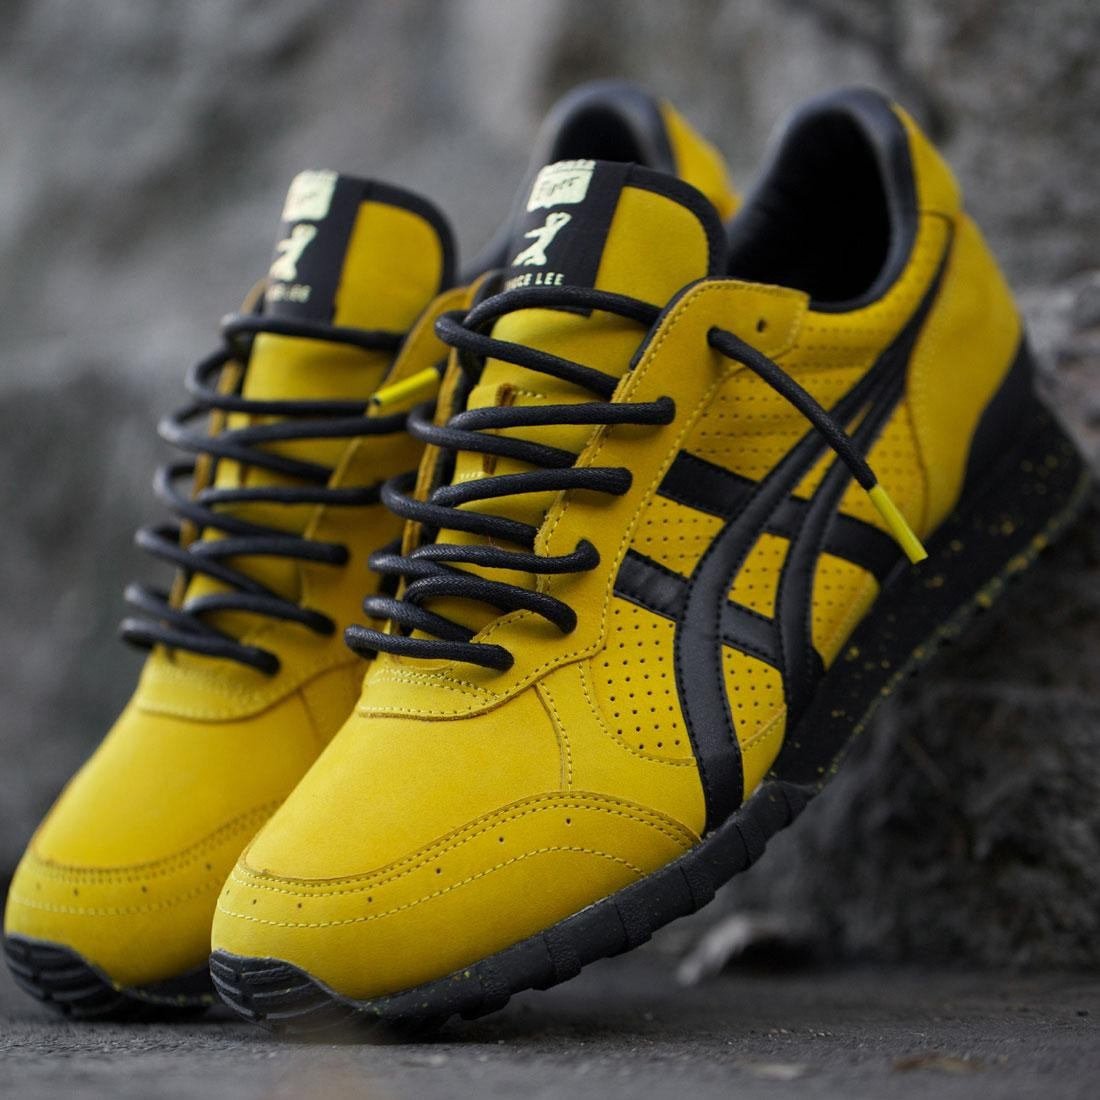 buy online 0679a 8a53a BAIT x Bruce Lee x Onitsuka Tiger Men Colorado Eighty Five - Legend (yellow)